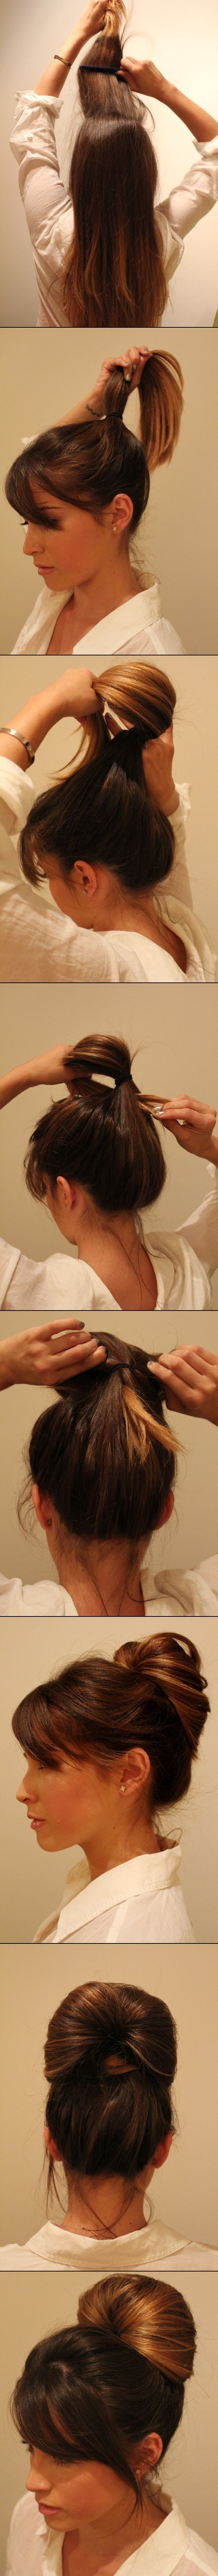 Simple Teased Updo Hairstyle Tutorial